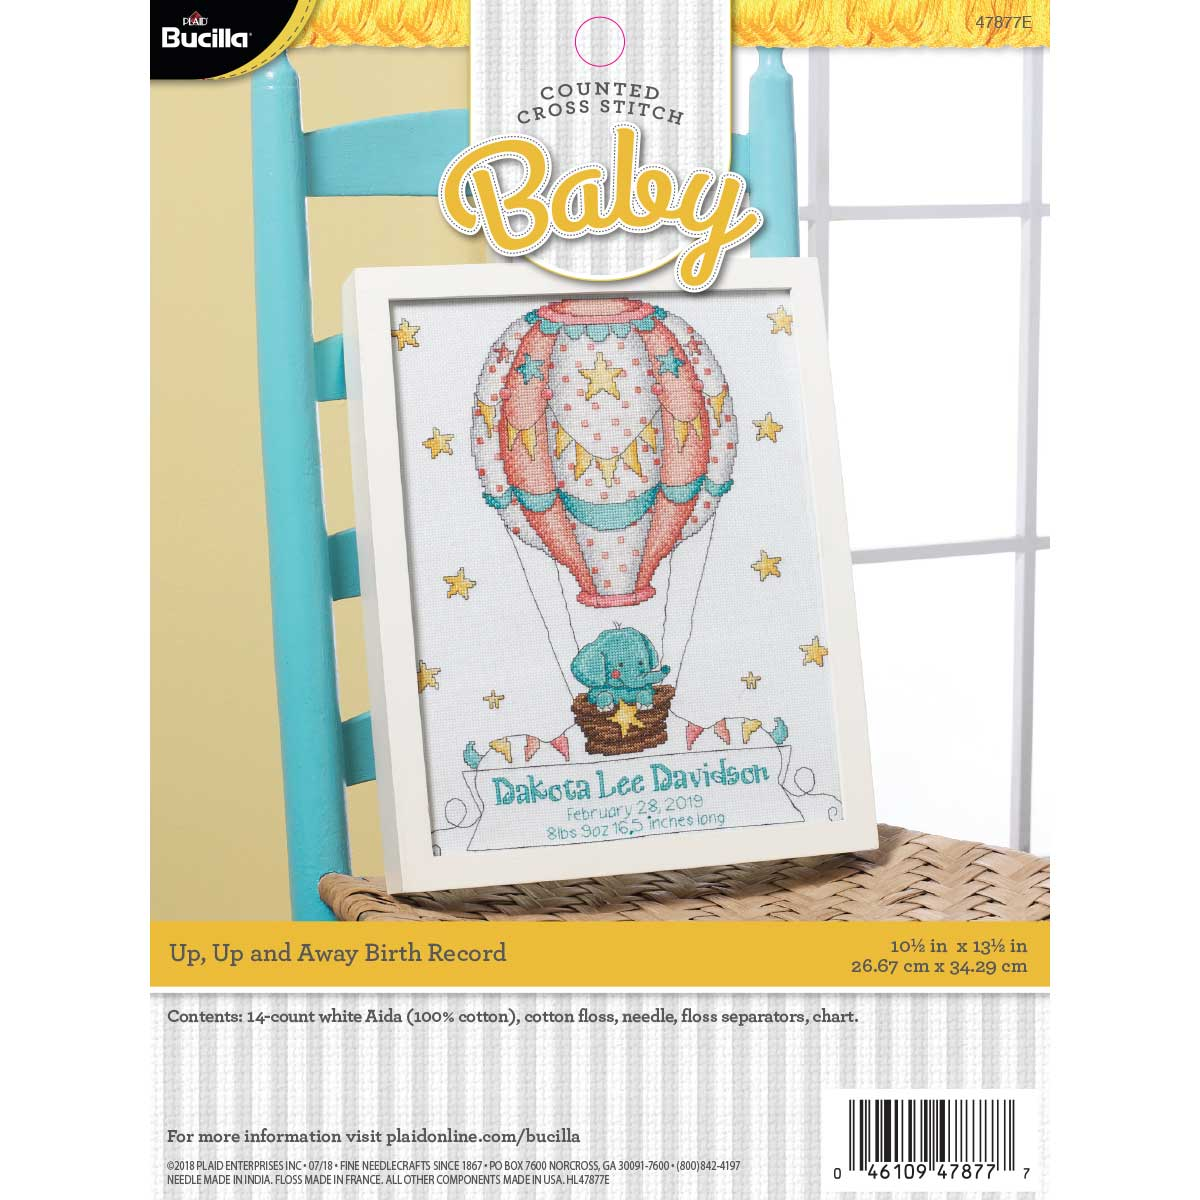 Bucilla ® Baby - Counted Cross Stitch - Crib Ensembles - Up Up and Away - Birth Record Kit - 47877E